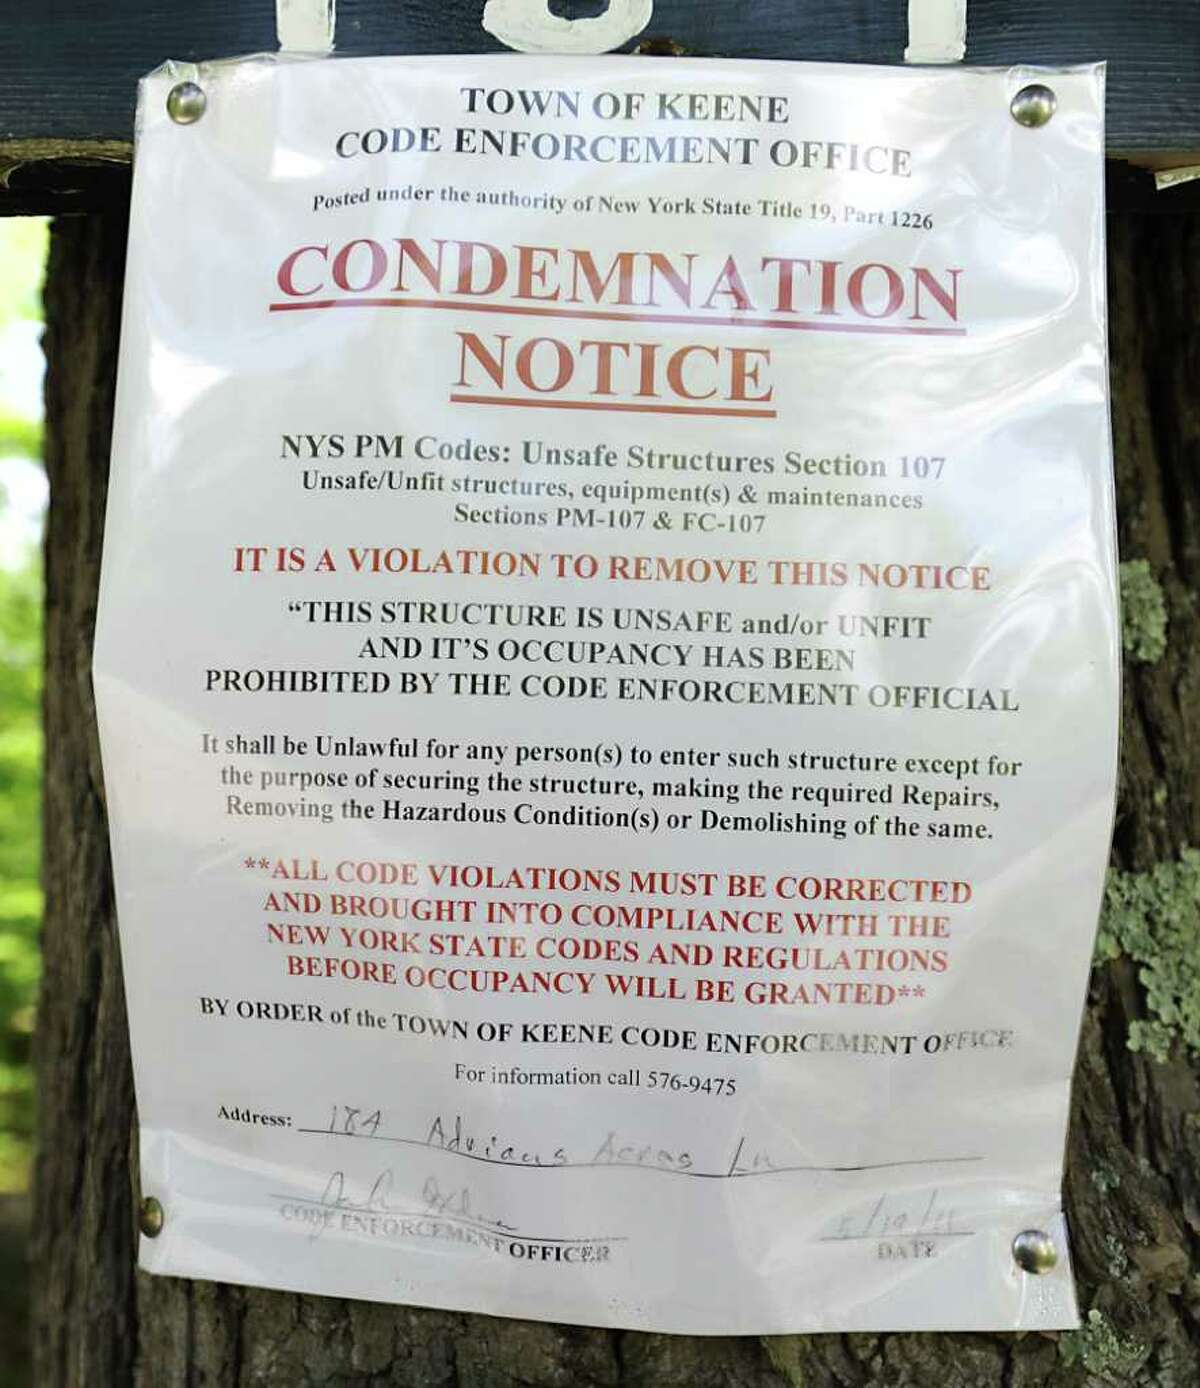 A condemnation notice is nailed to a tree at the beginning of the Machold's driveway in Keene Valley, N.Y. Tuesday May 31, 2011. (Lori Van Buren / Times Union)